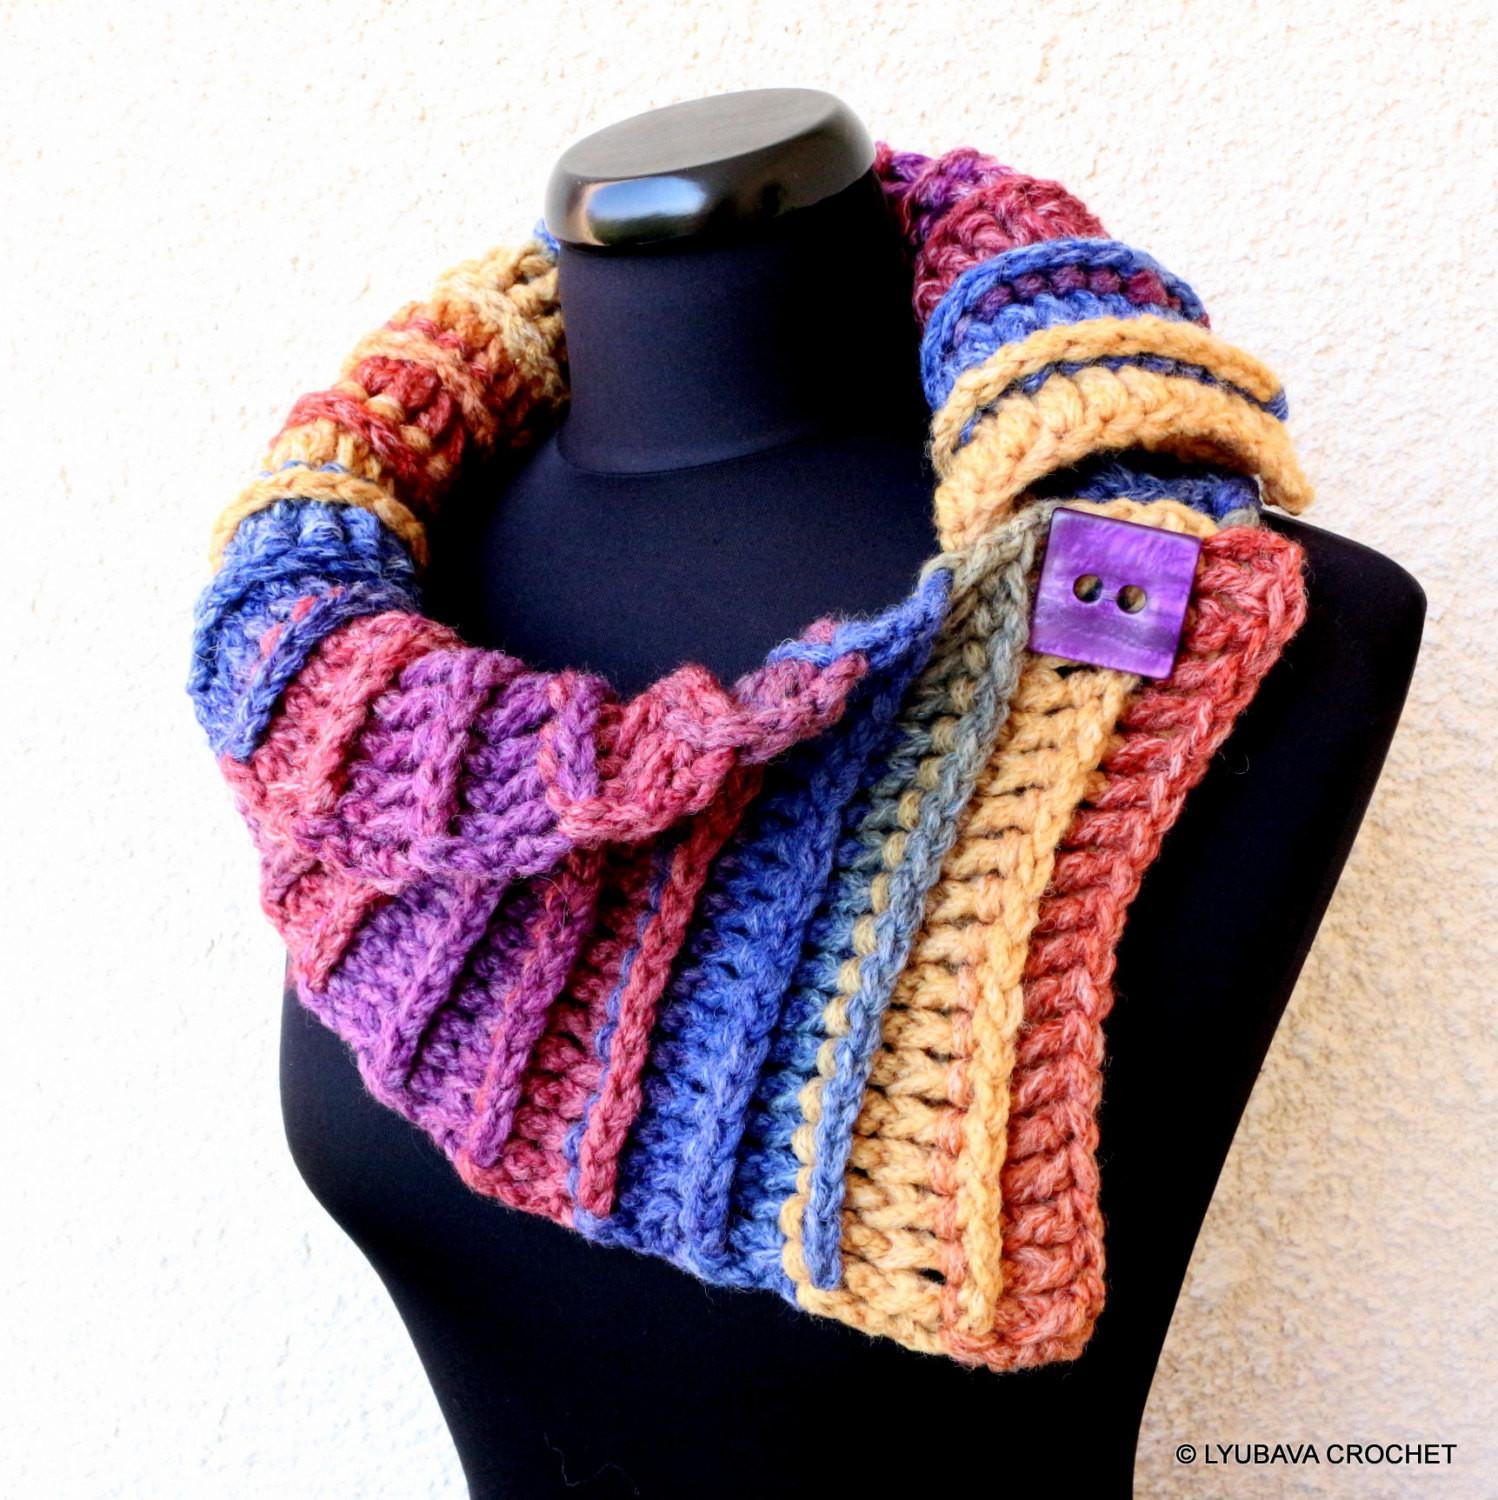 Crochet Scarf Two Buttons Multicolor Cozy Fall